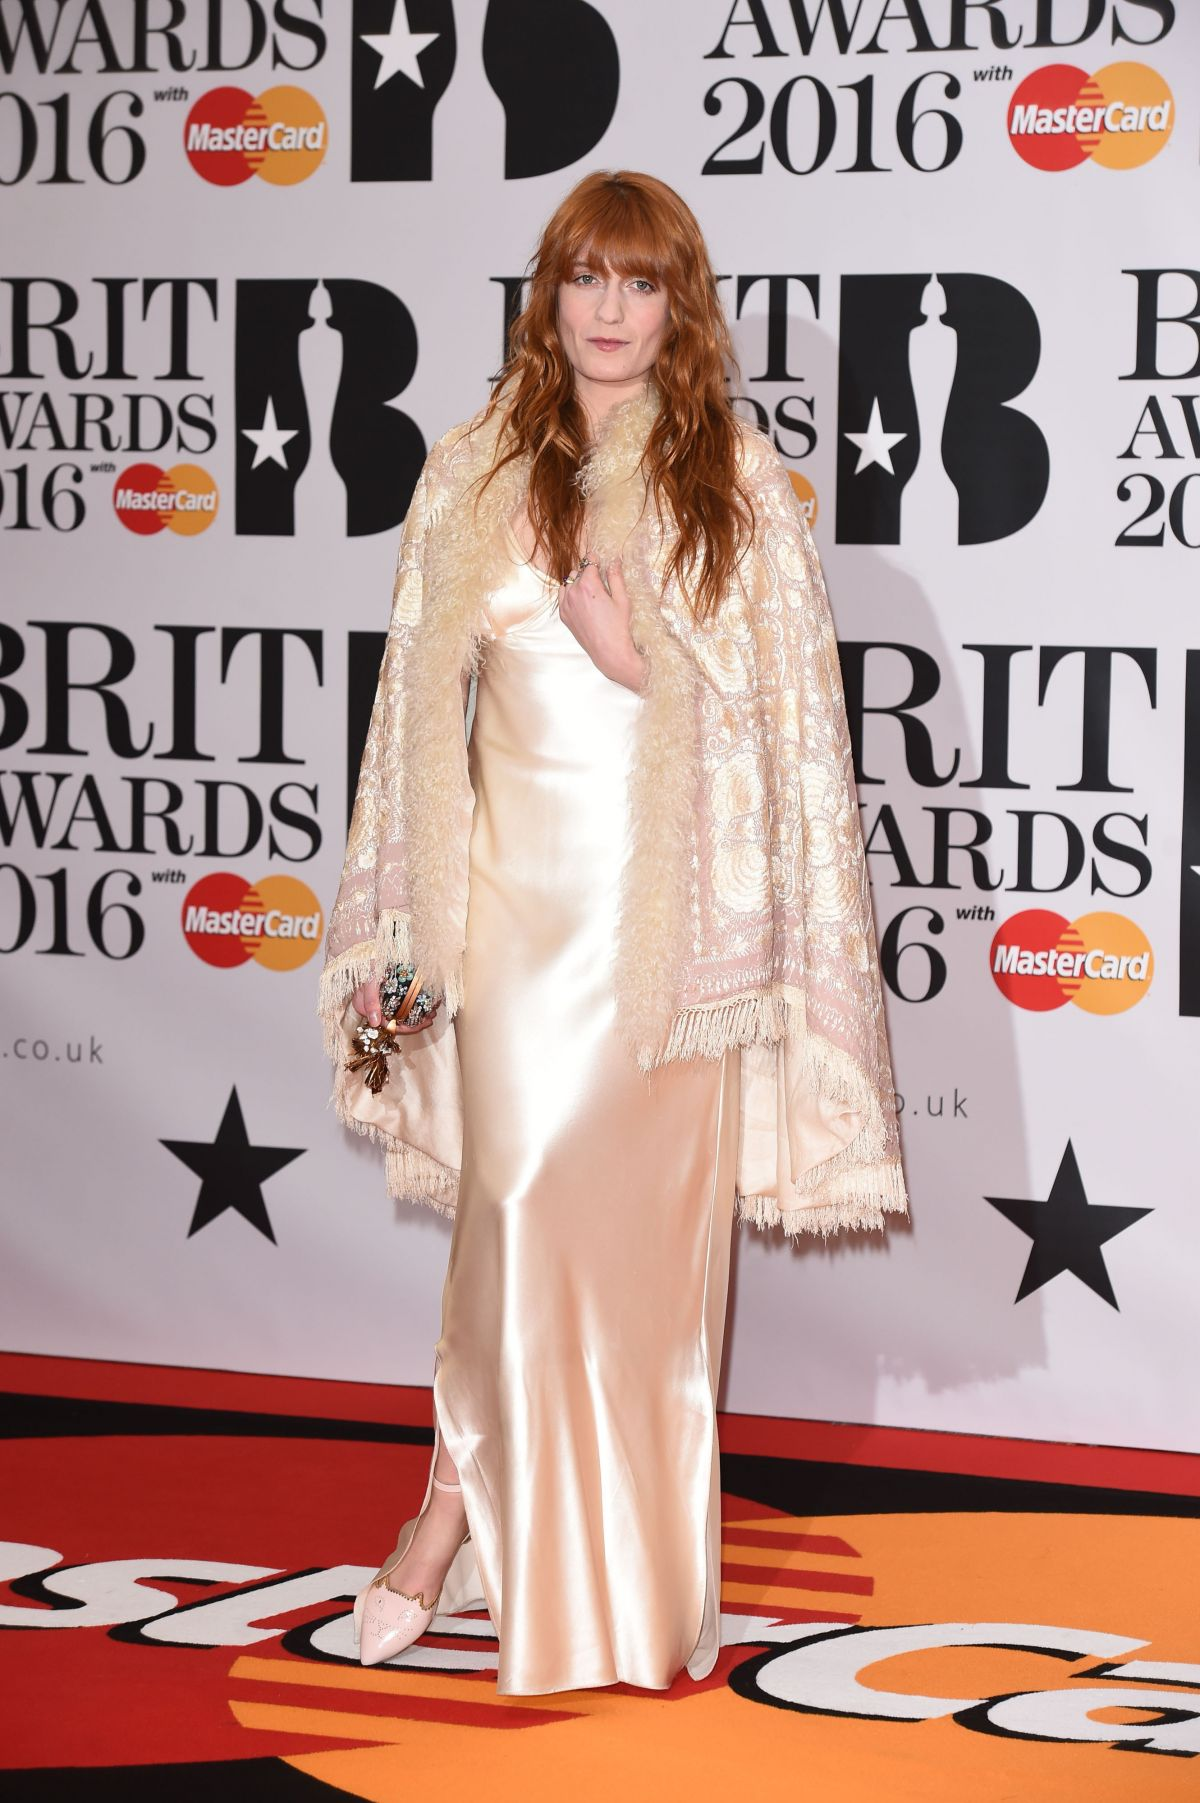 FLORENCE WELCH at Brit Awards 2016 in London 02/24/2016